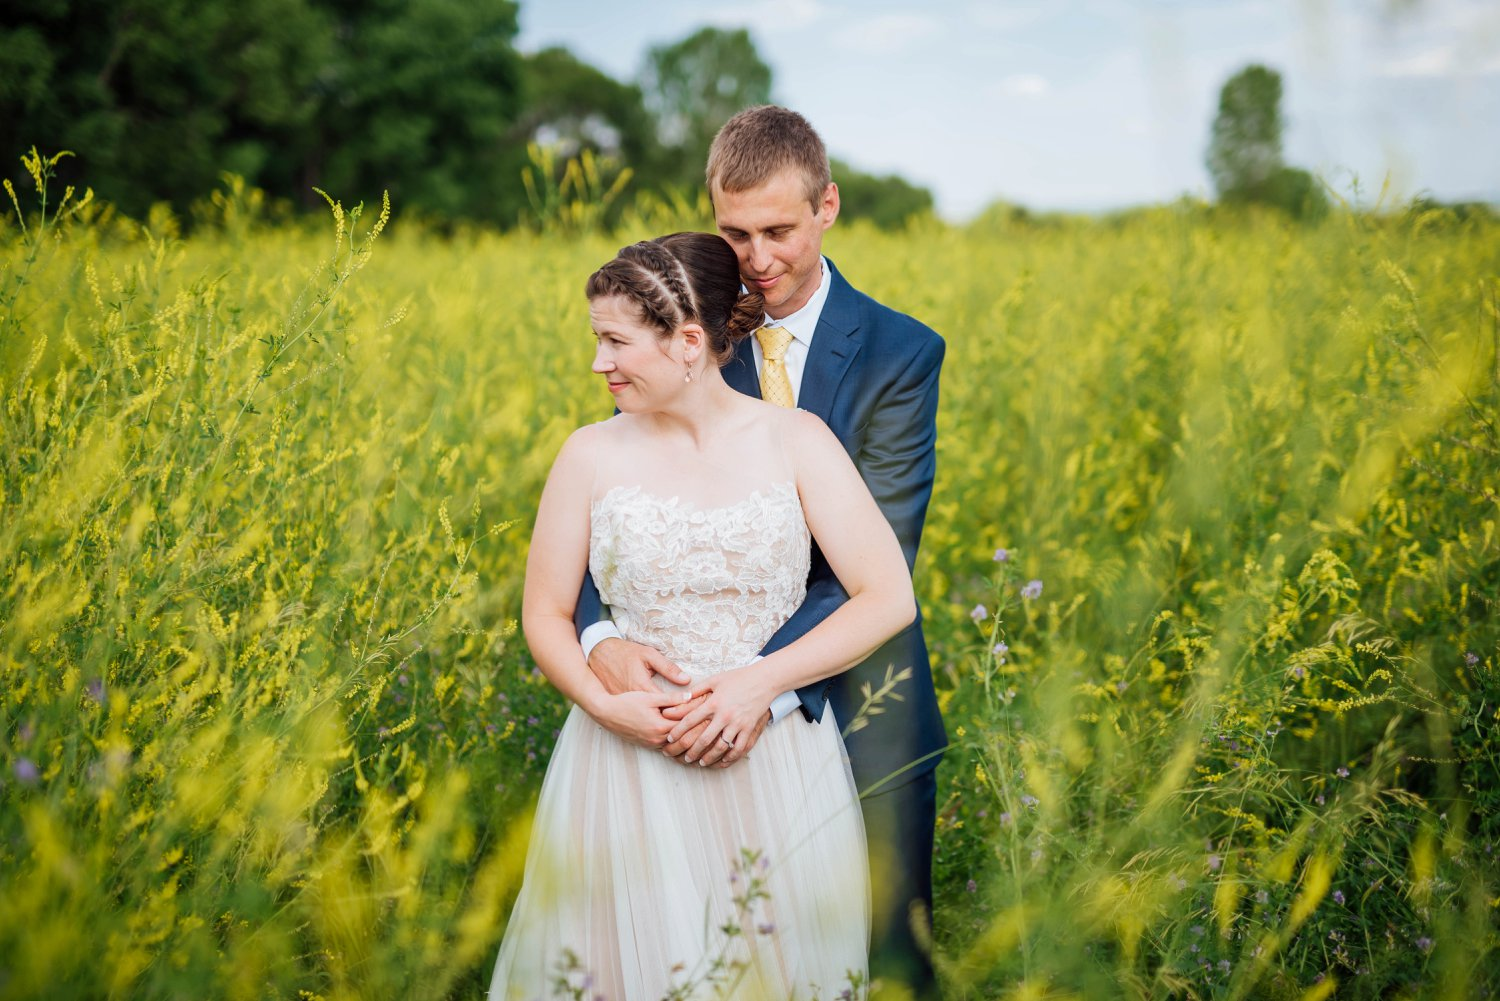 Denver Botanic Gardens in Chatfield is surrounded by these beautiful fields of tall grass during the summer.One of the best wedding venues in Colorado!Photo by Maddie Mae Photography